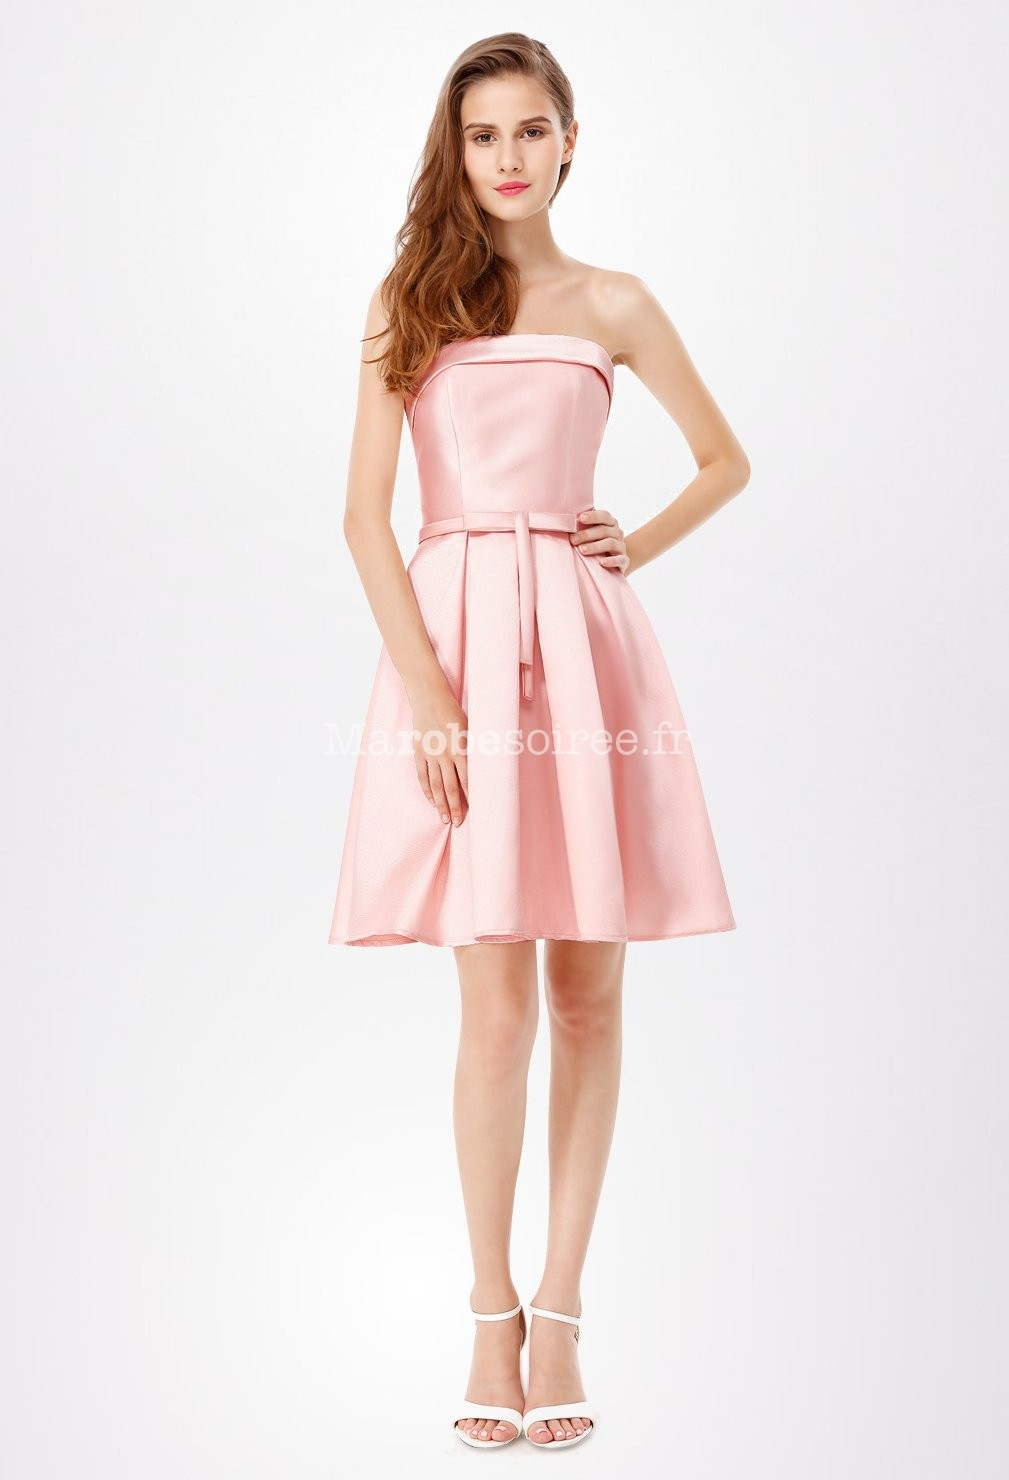 Robe cocktail bustier courte rose